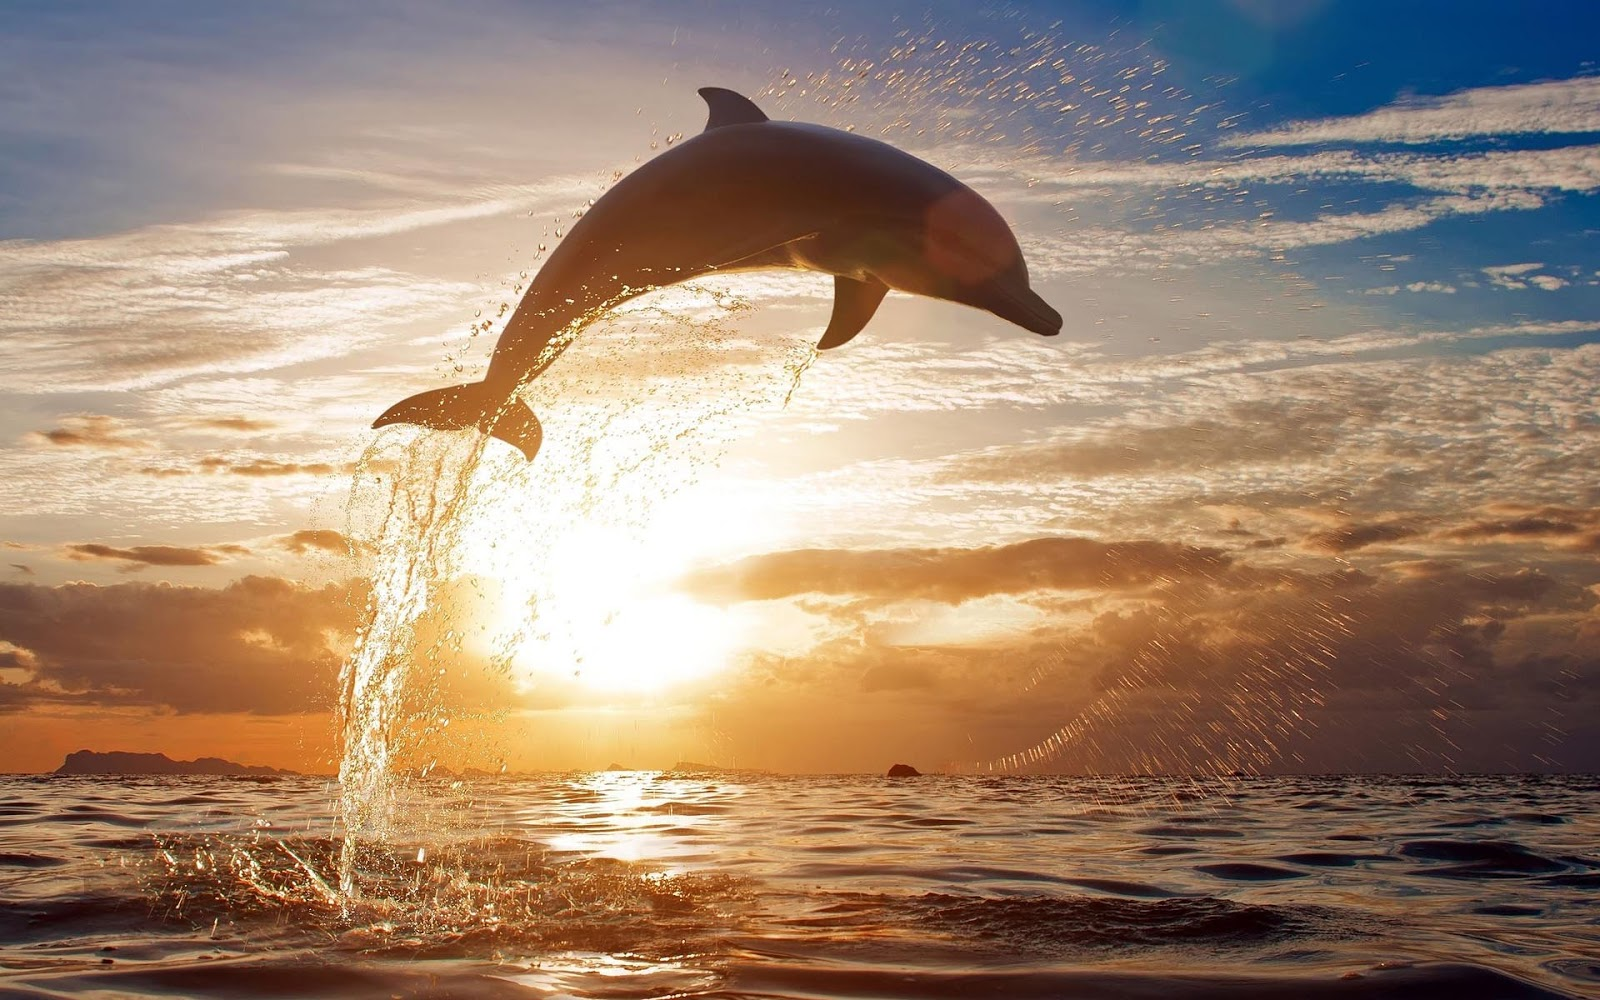 Dolphin Backgrounds wallpaper Dolphin Backgrounds hd wallpaper 1600x1000